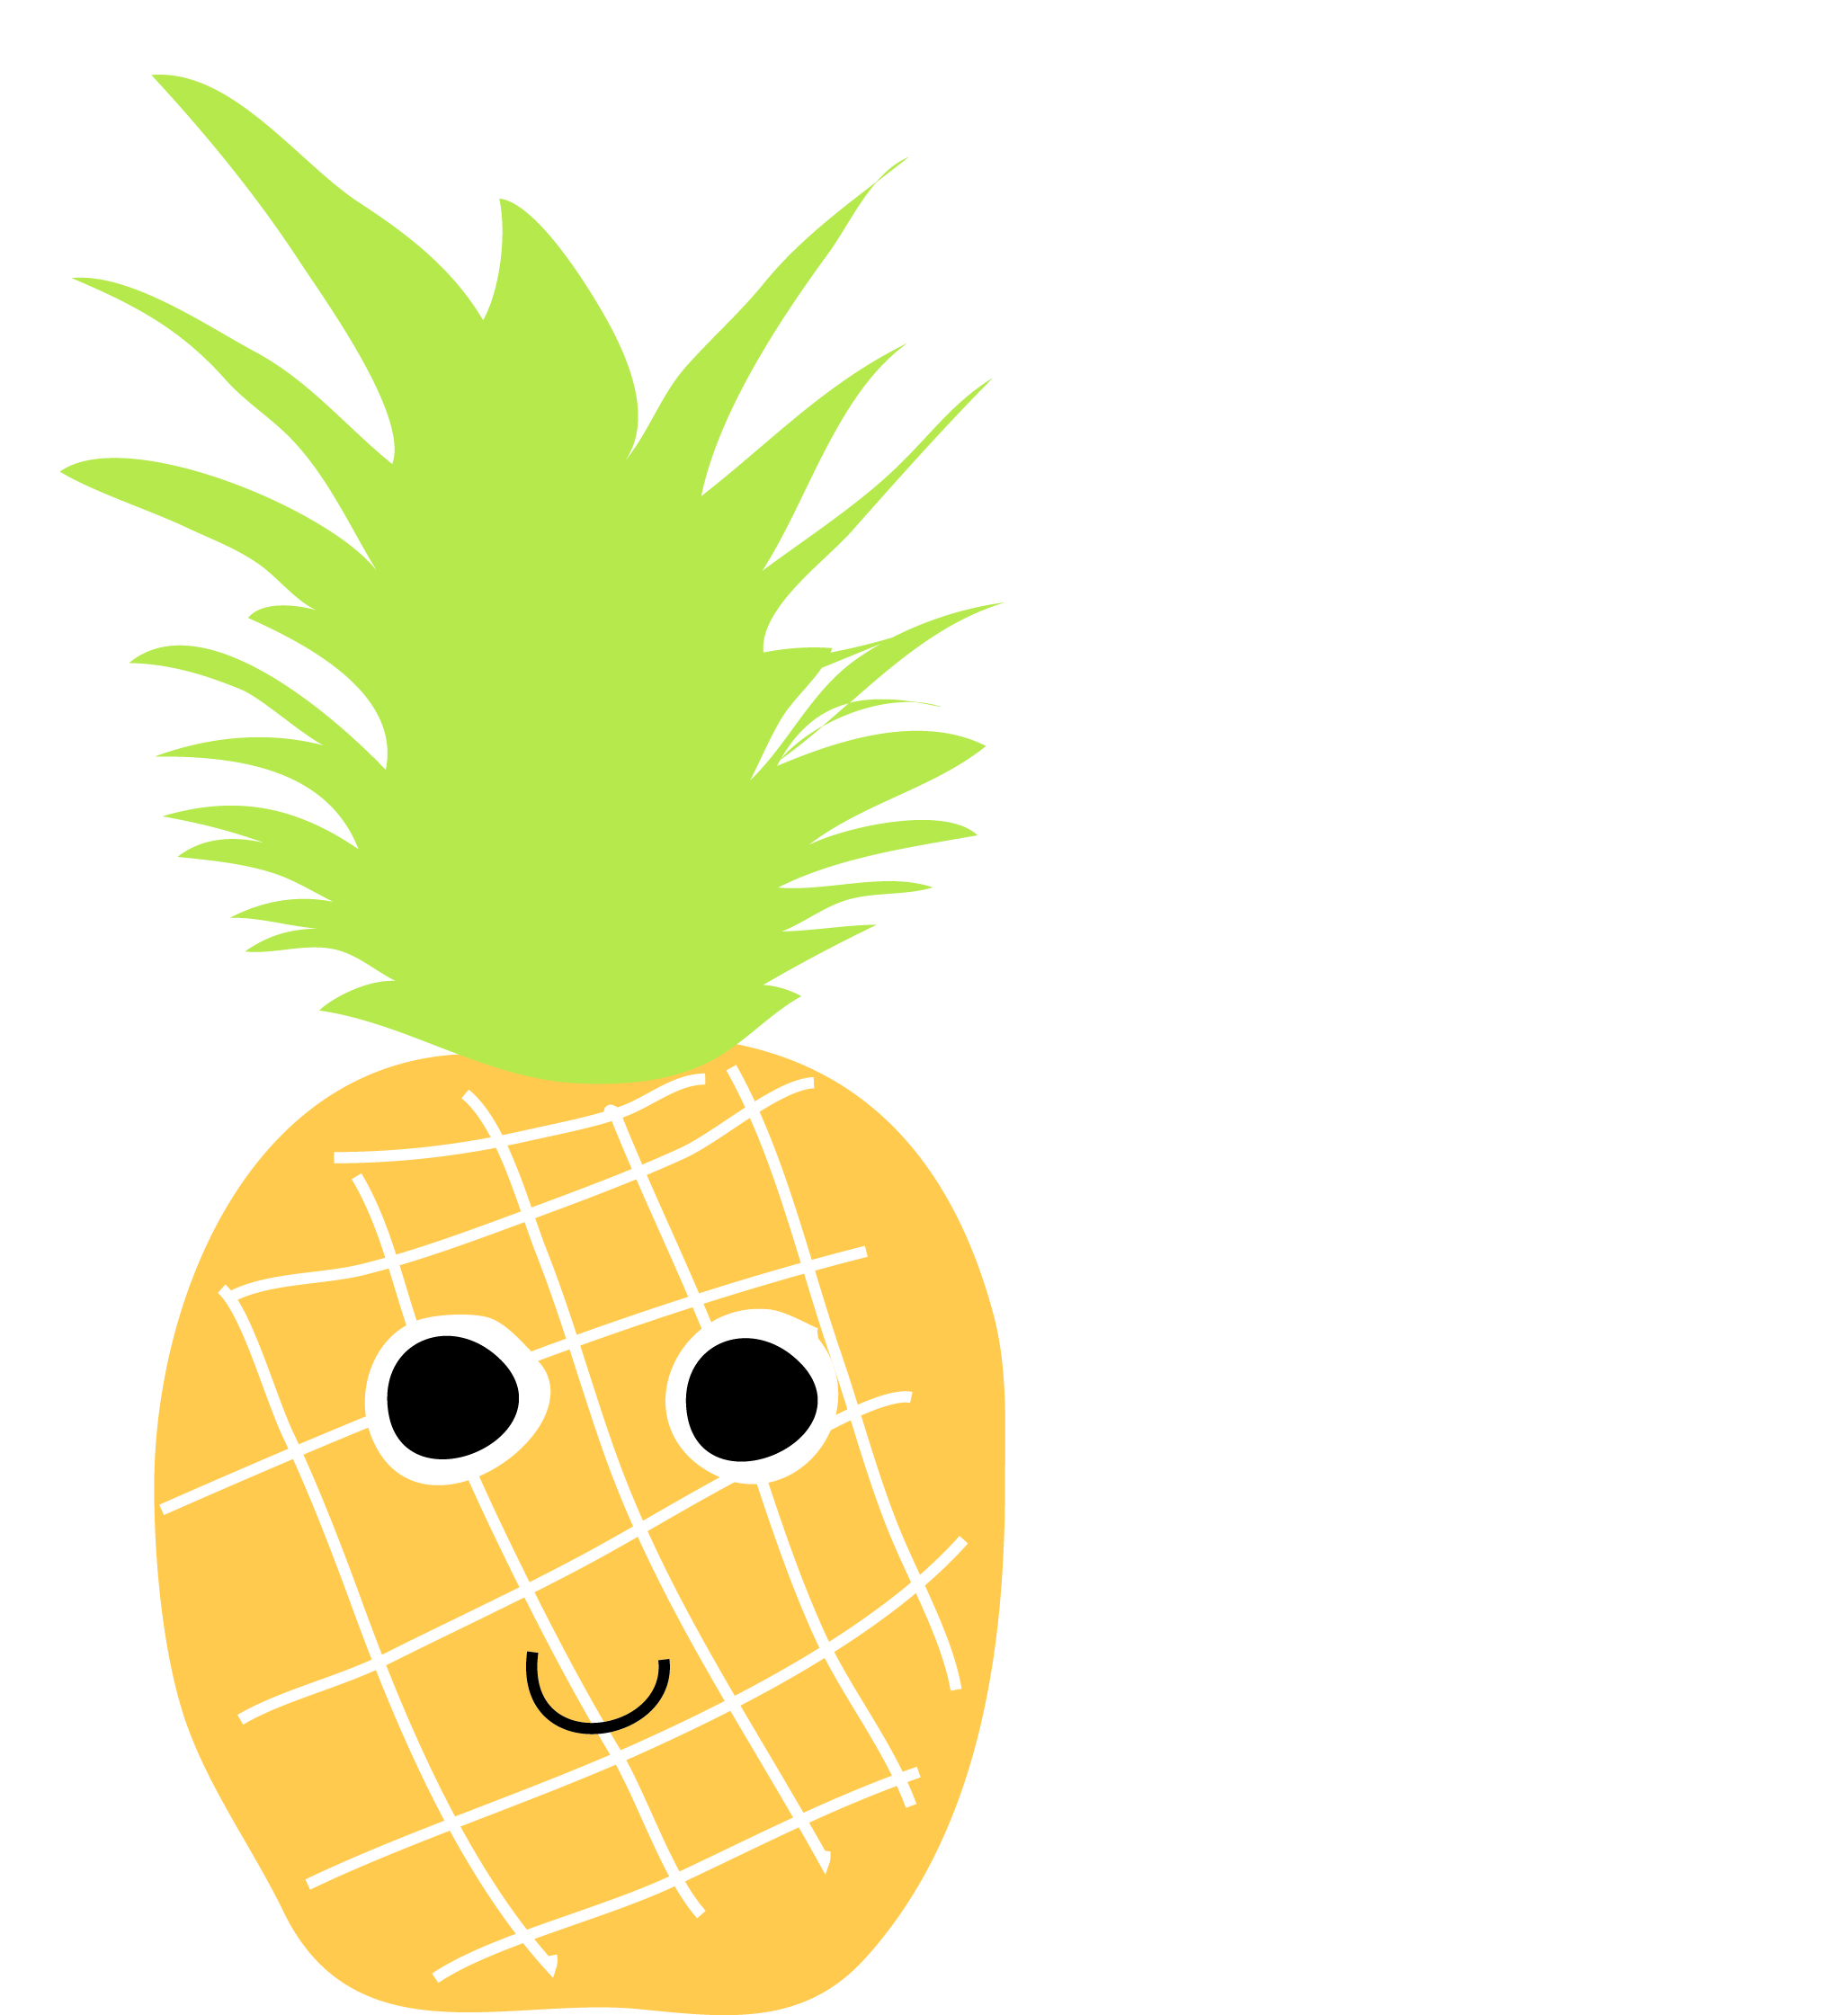 Image of: Pineapple Wallpaper Pineapple Stencil Clipart Library Free Clipart Images Pngkey Cartoon Pineapple Tumblr Clip Art Library